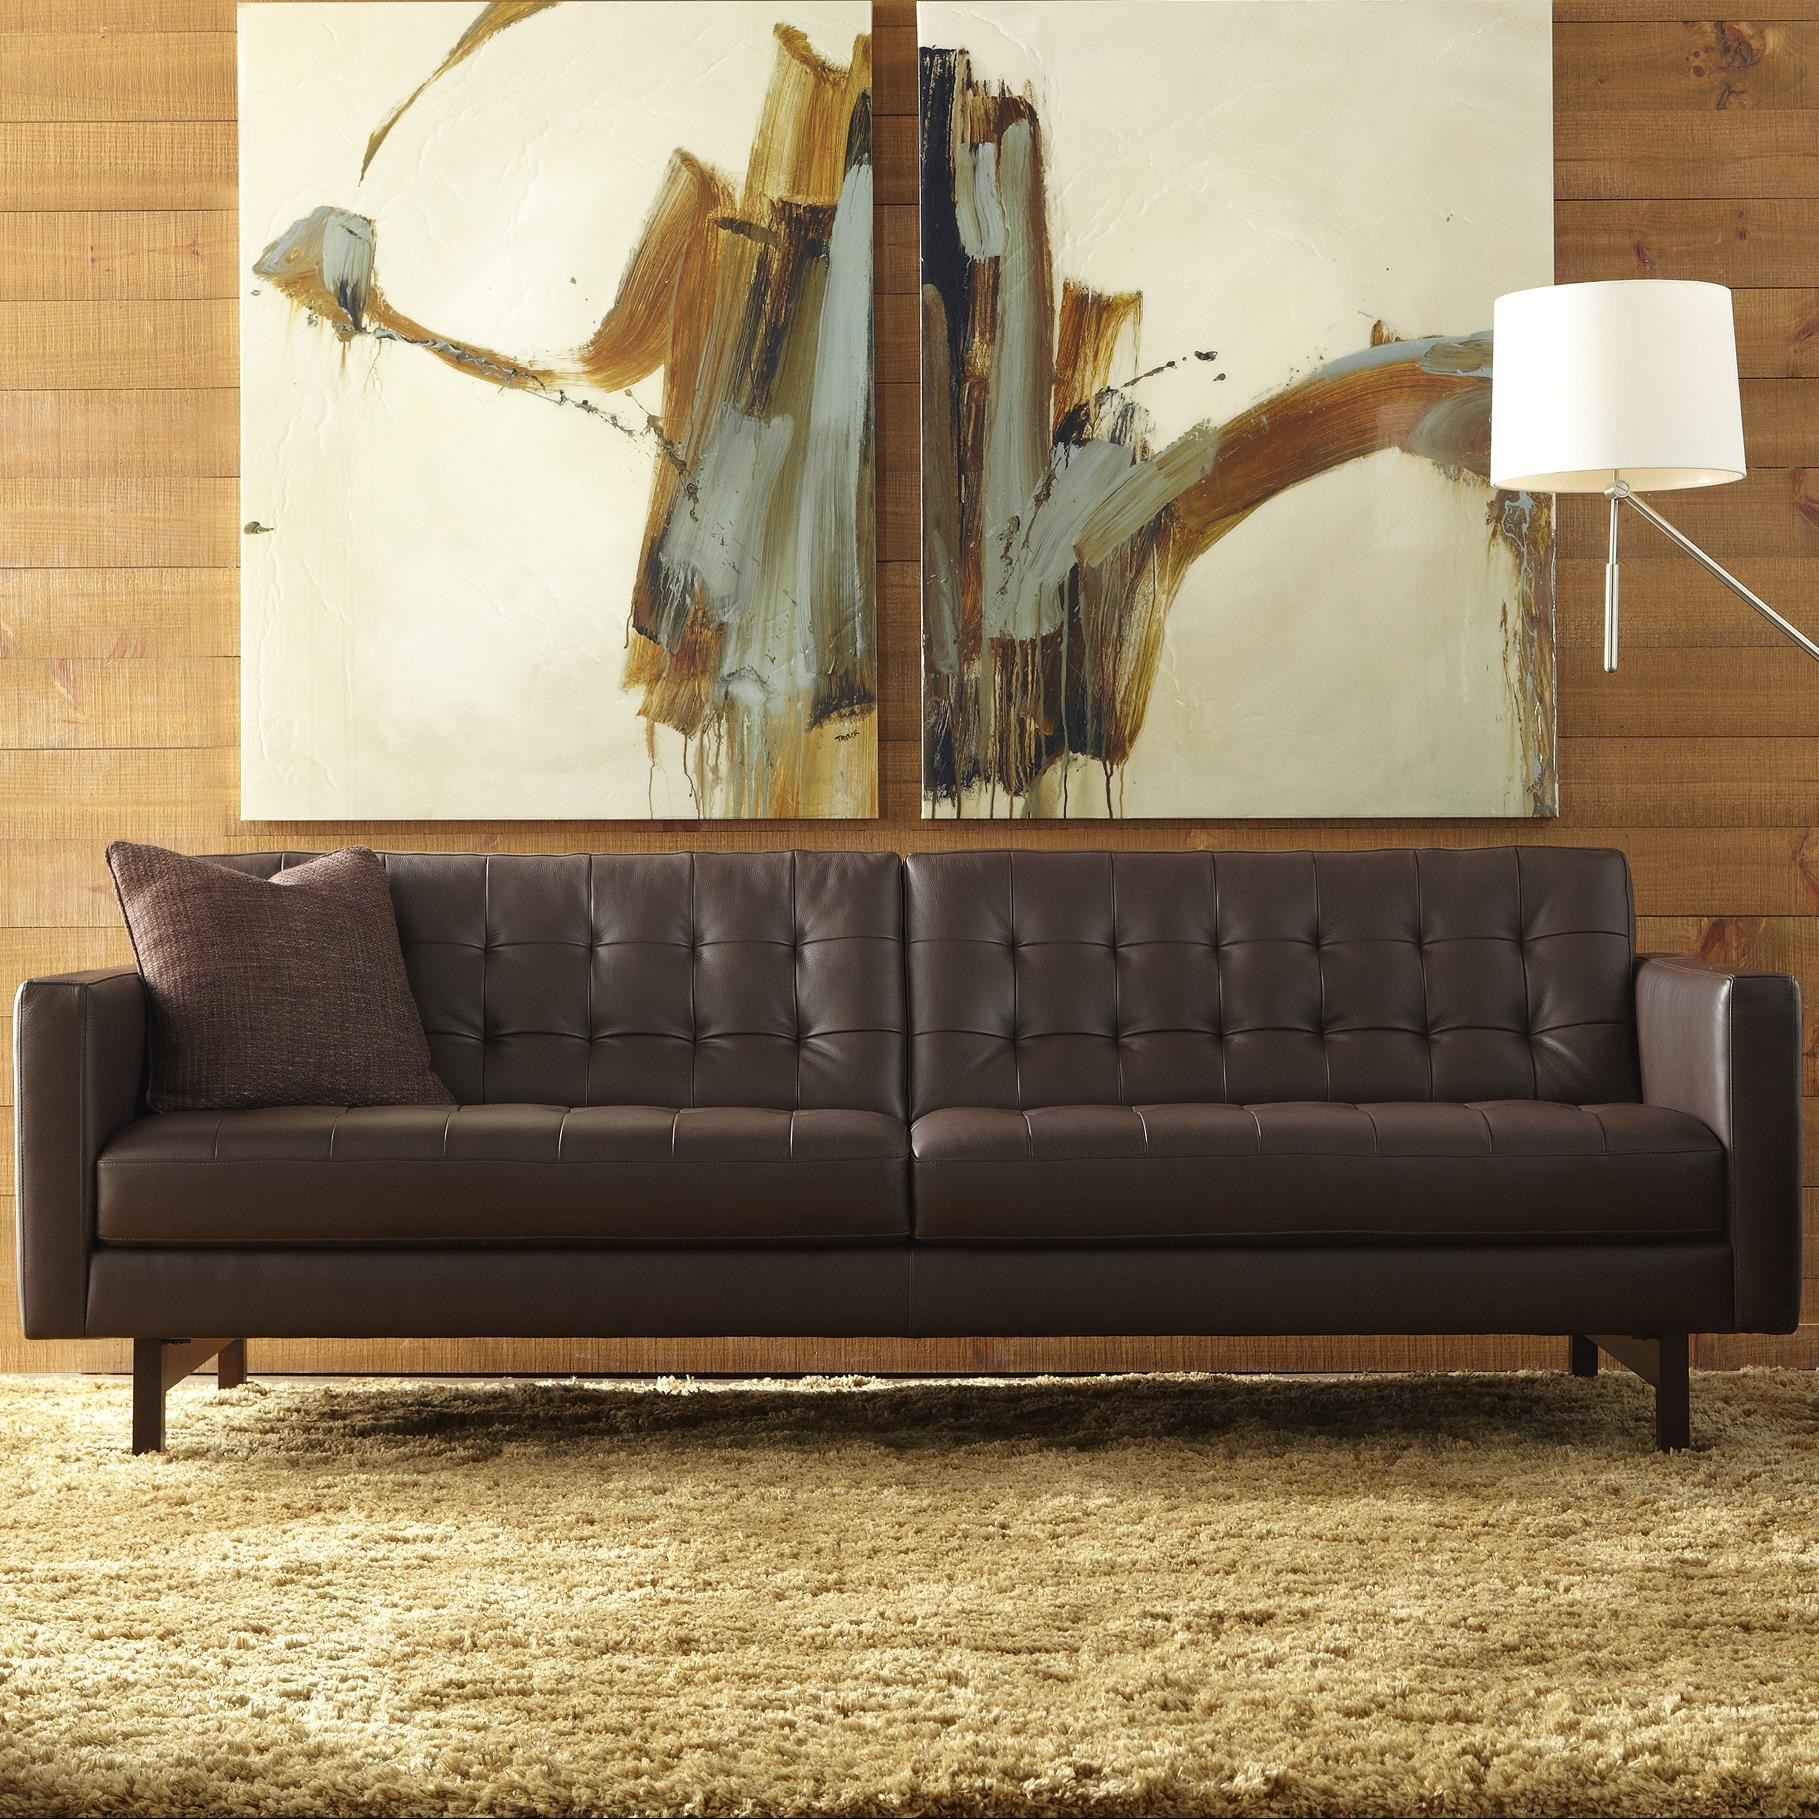 American Leather Sofa Home Decor